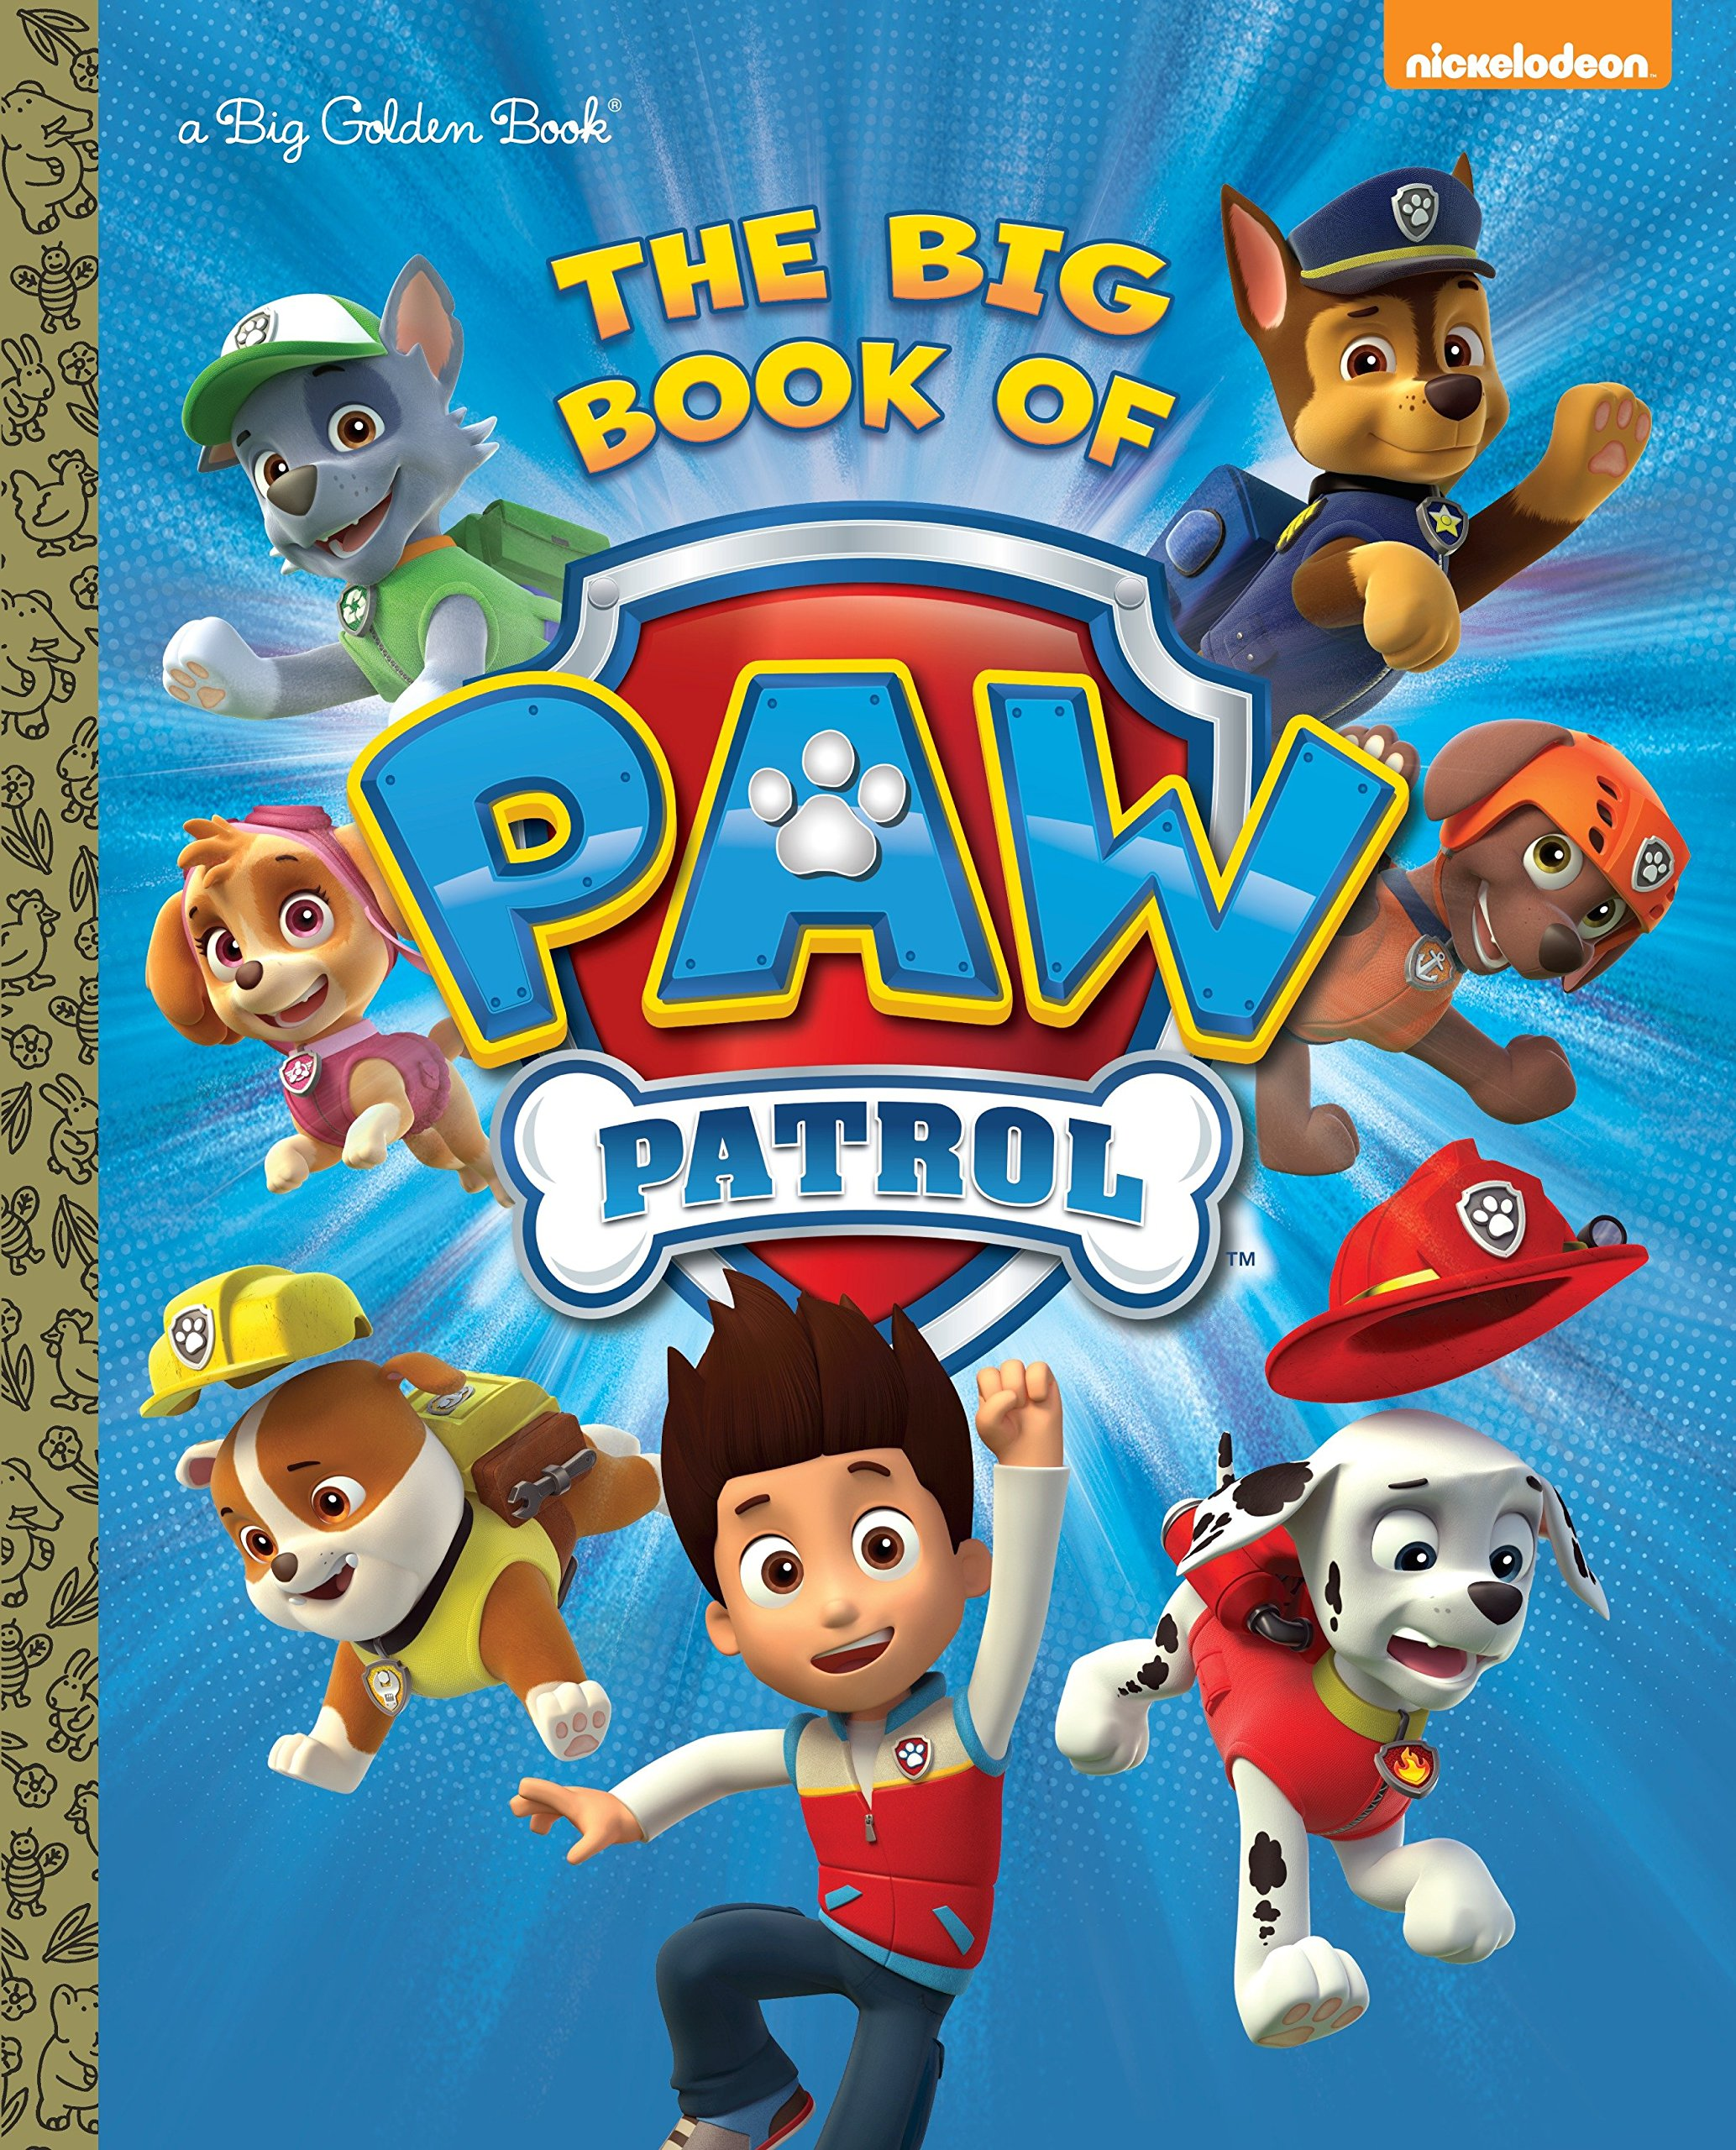 The Big Book of Paw Patrol (Paw Patrol): Amazon.ca: Golden Books ...